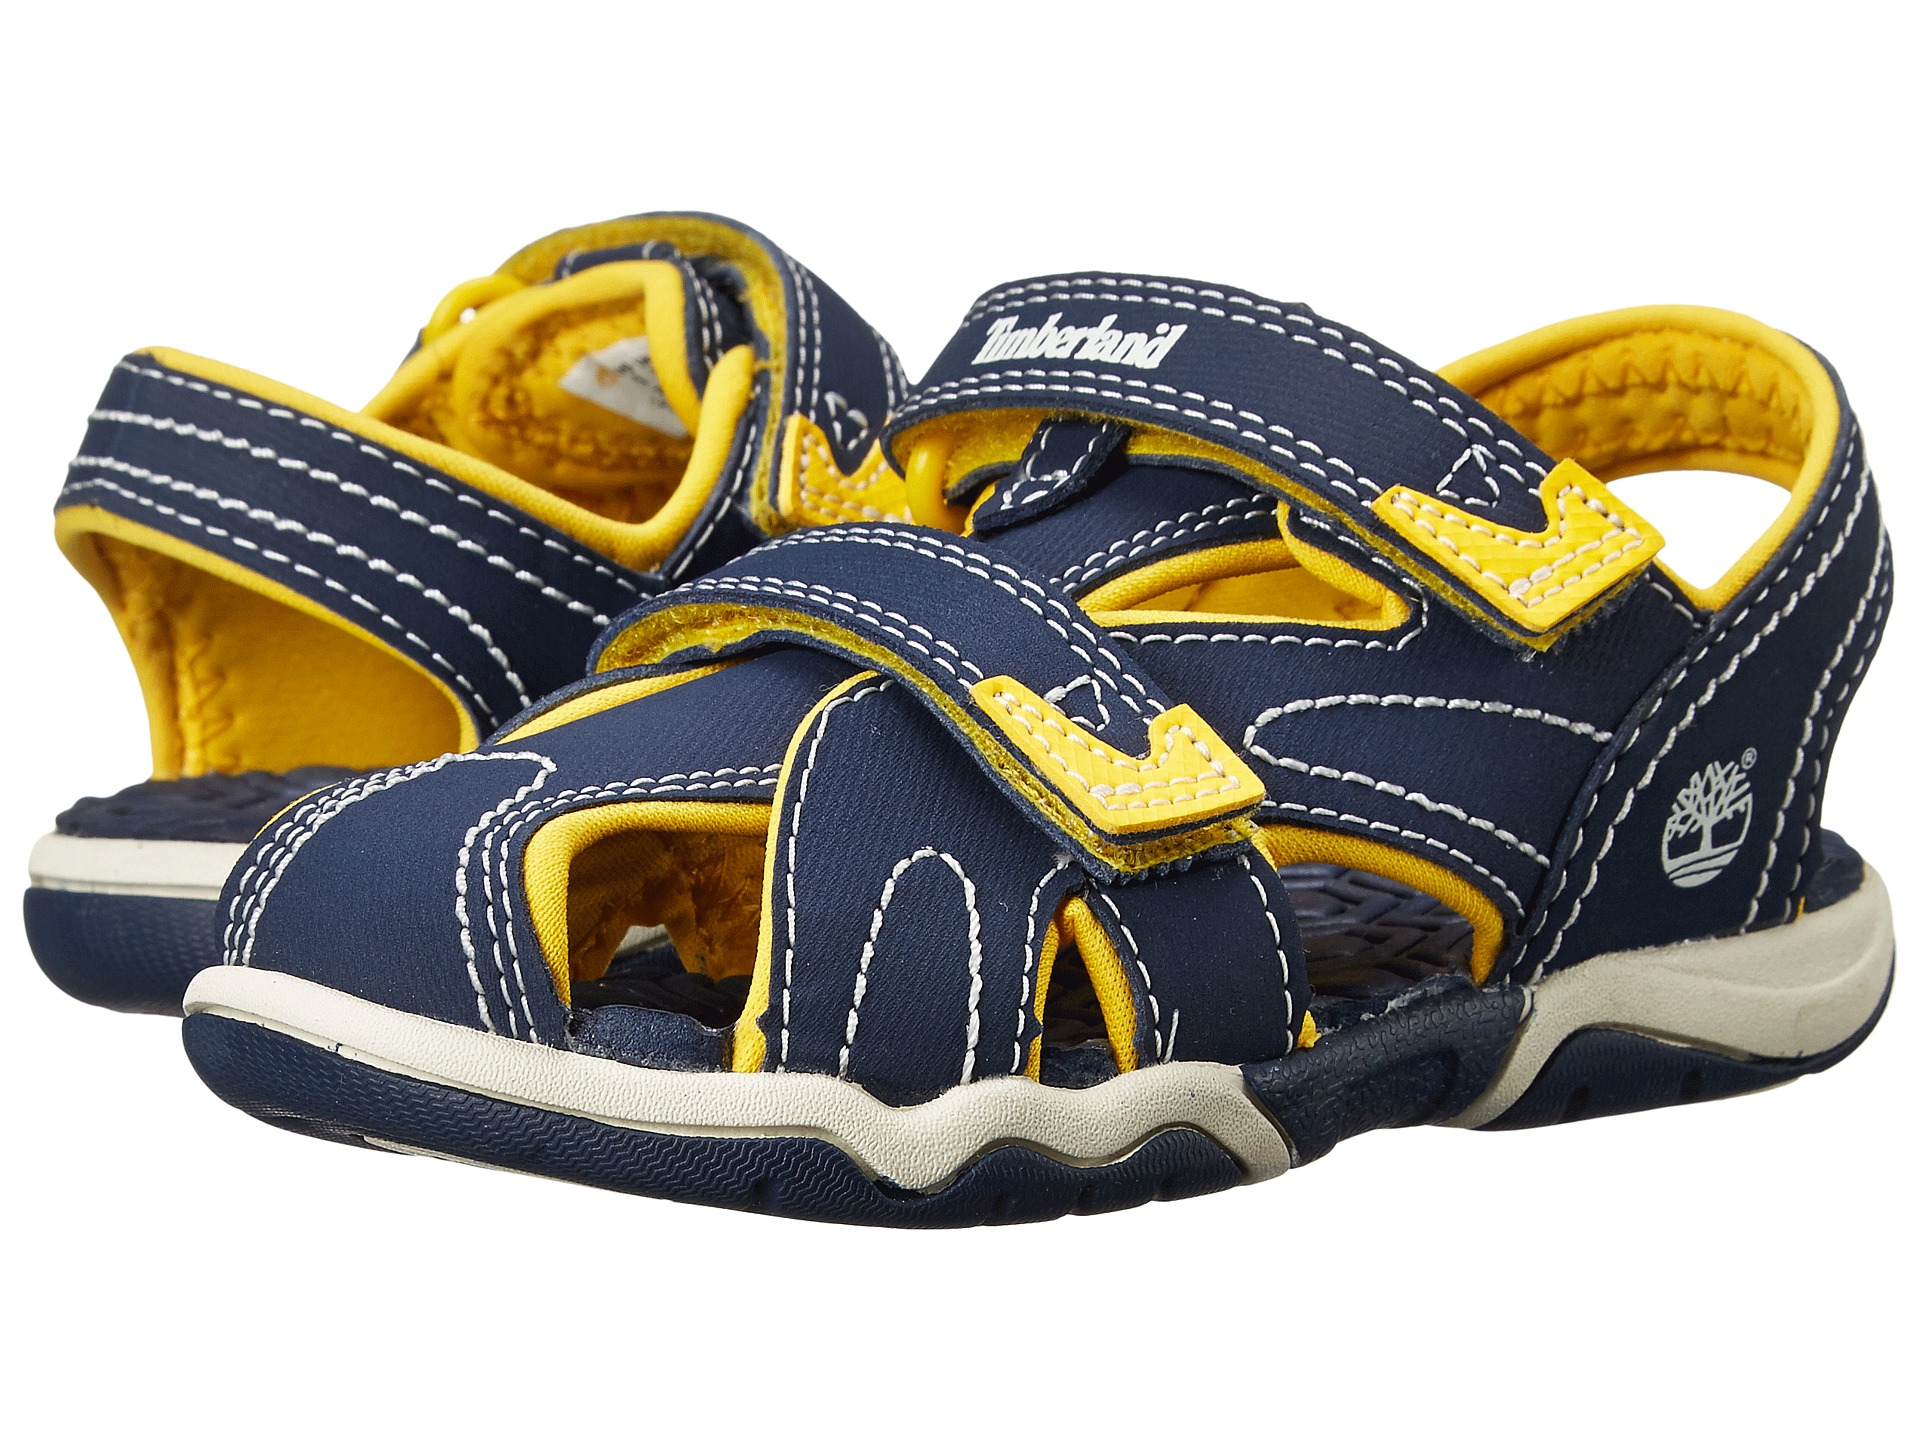 timberland adventure seeker closedtoe sandal